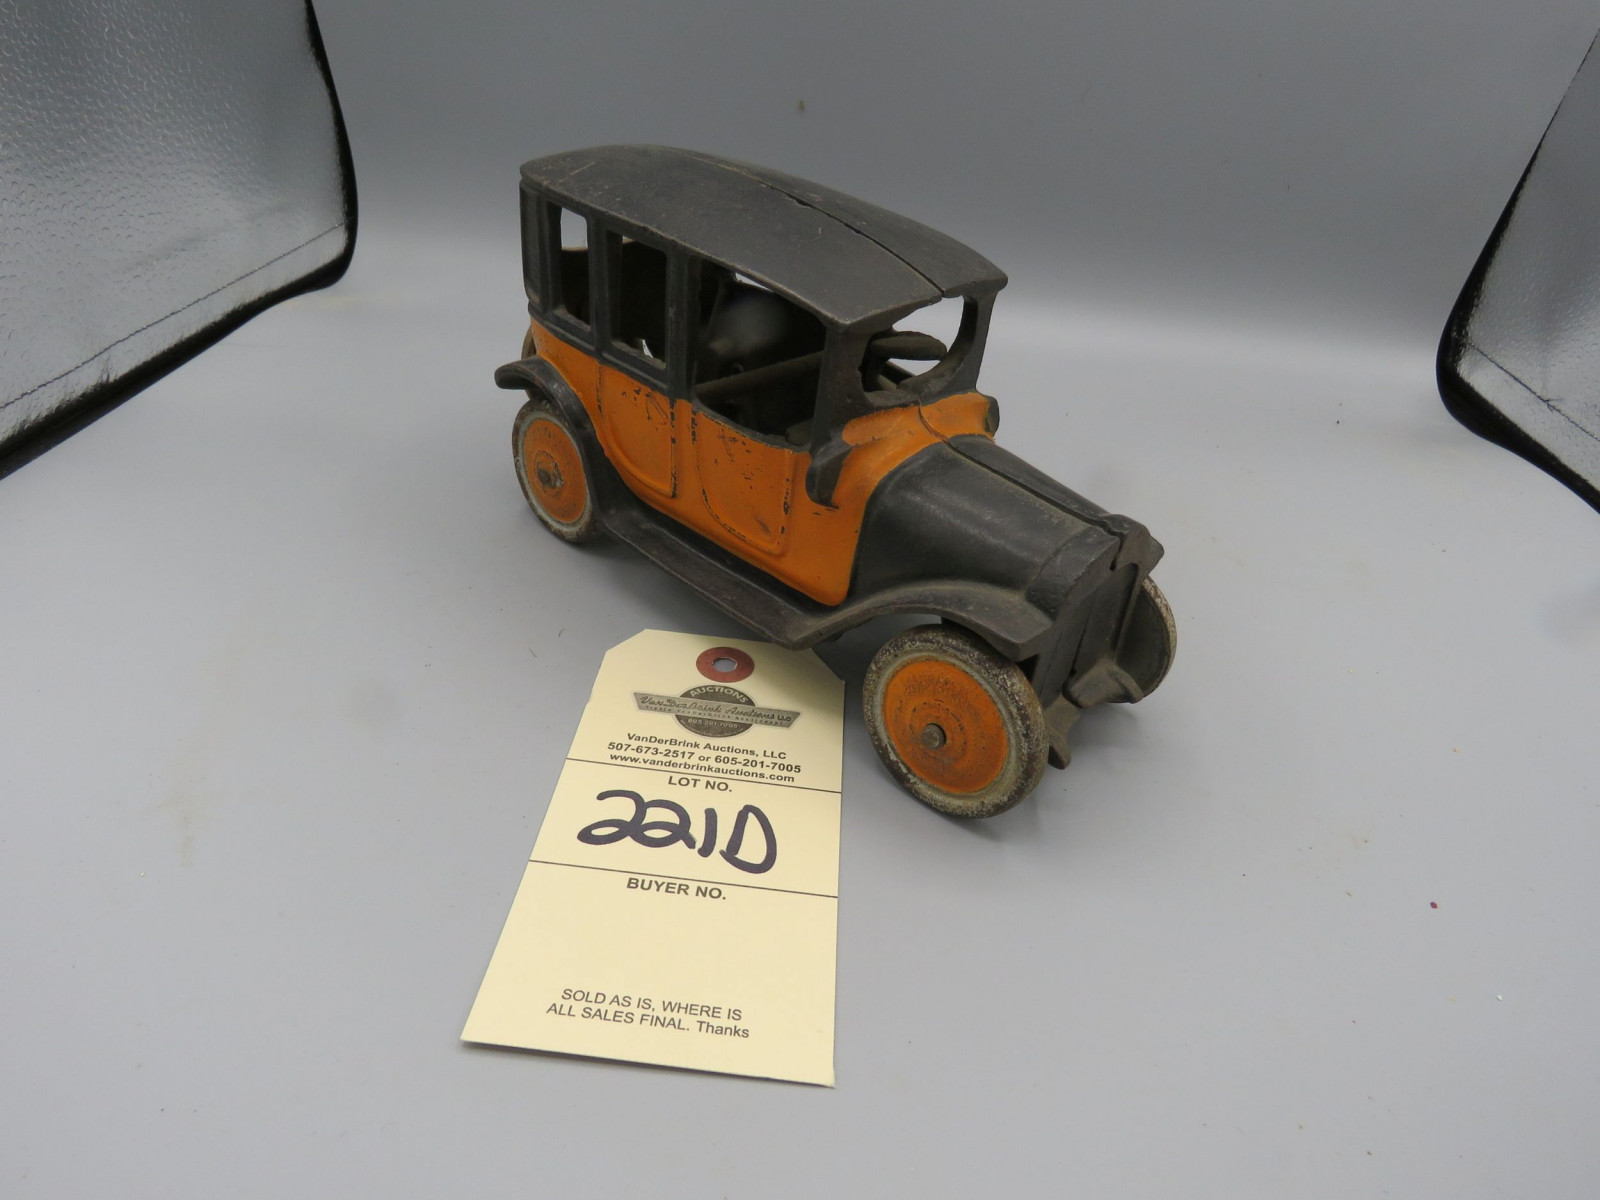 Hubley Cast Iron Sedan - Image 1